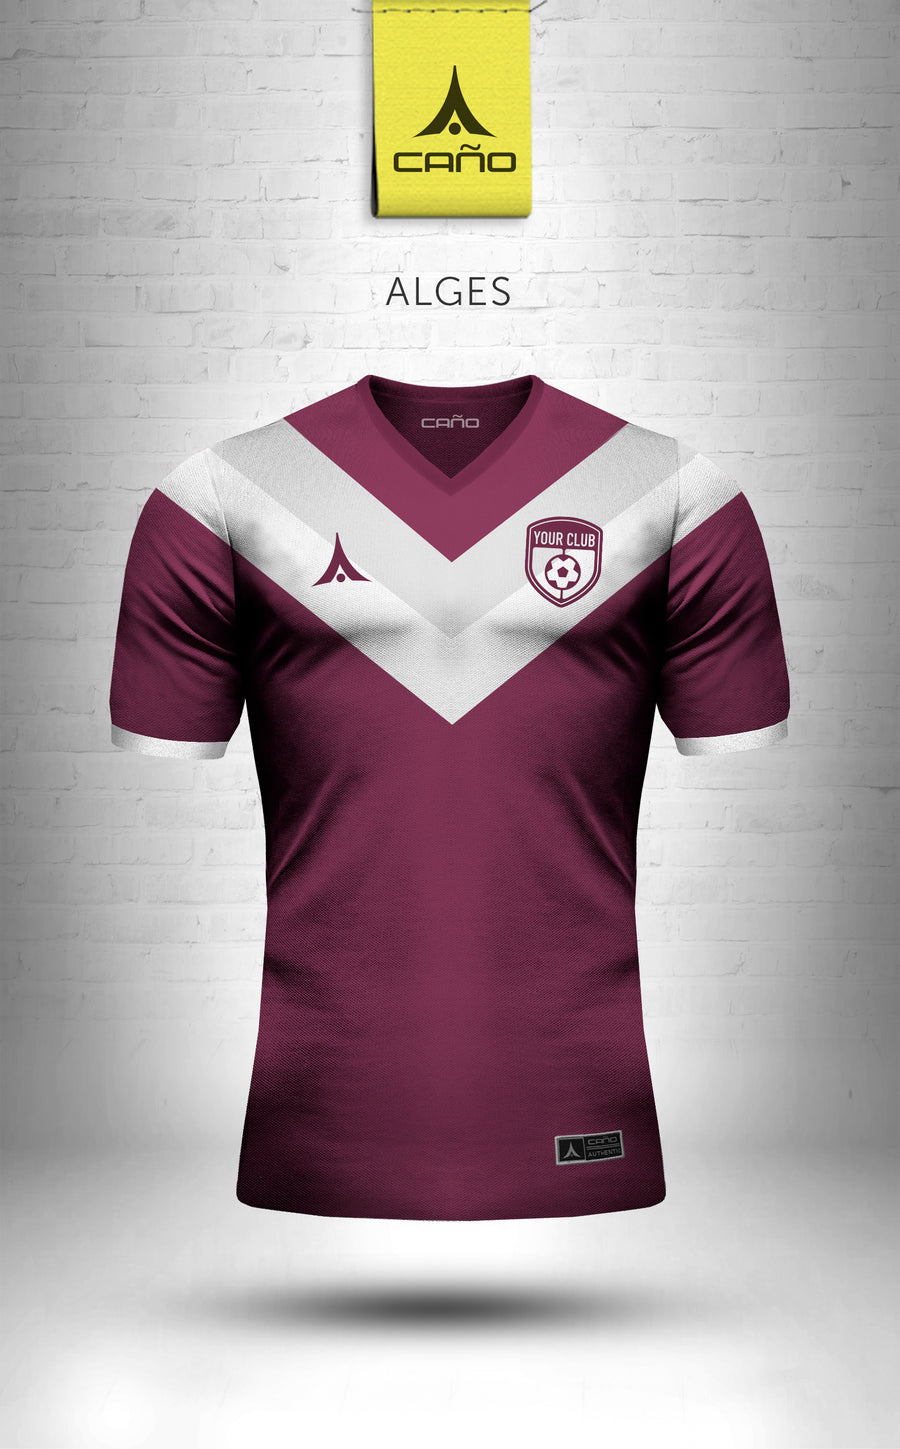 Alges in maroon/white